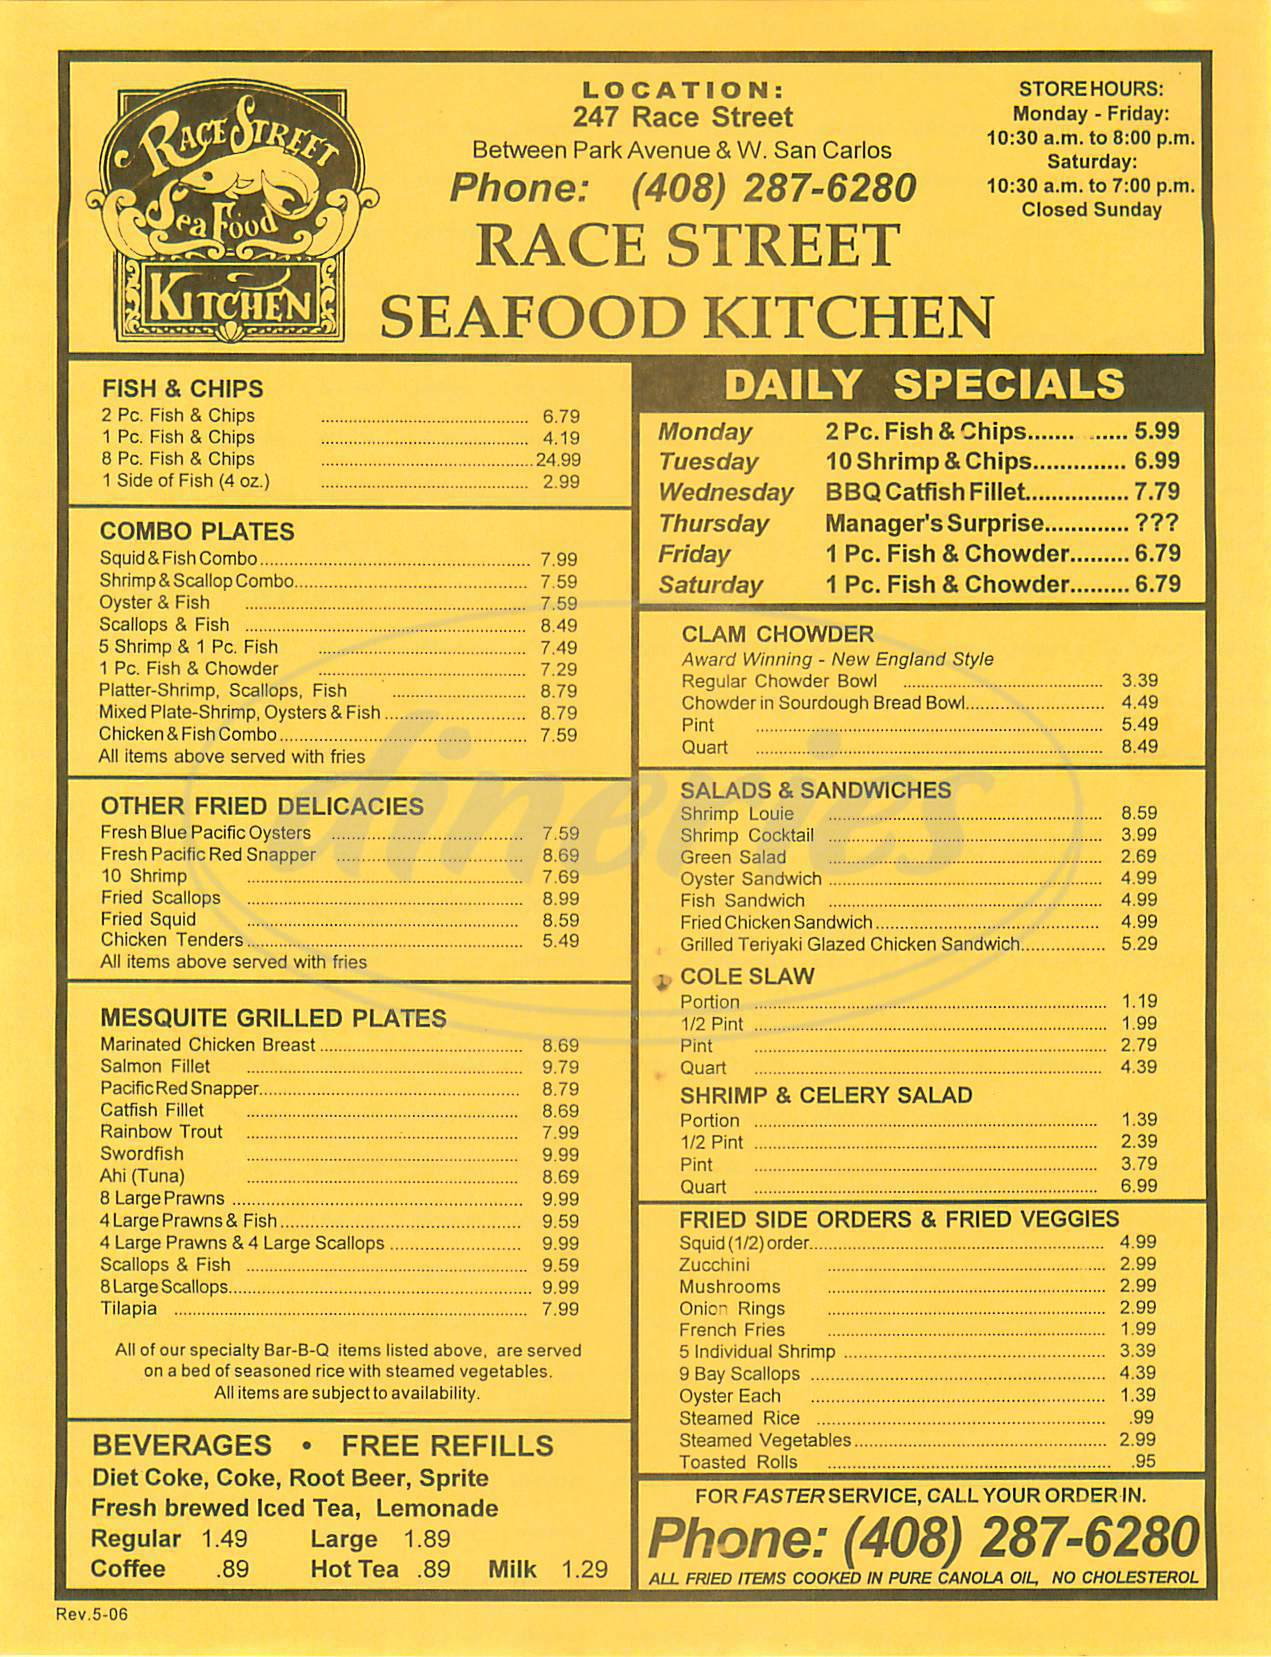 menu for Race Street Seafood Kitchen